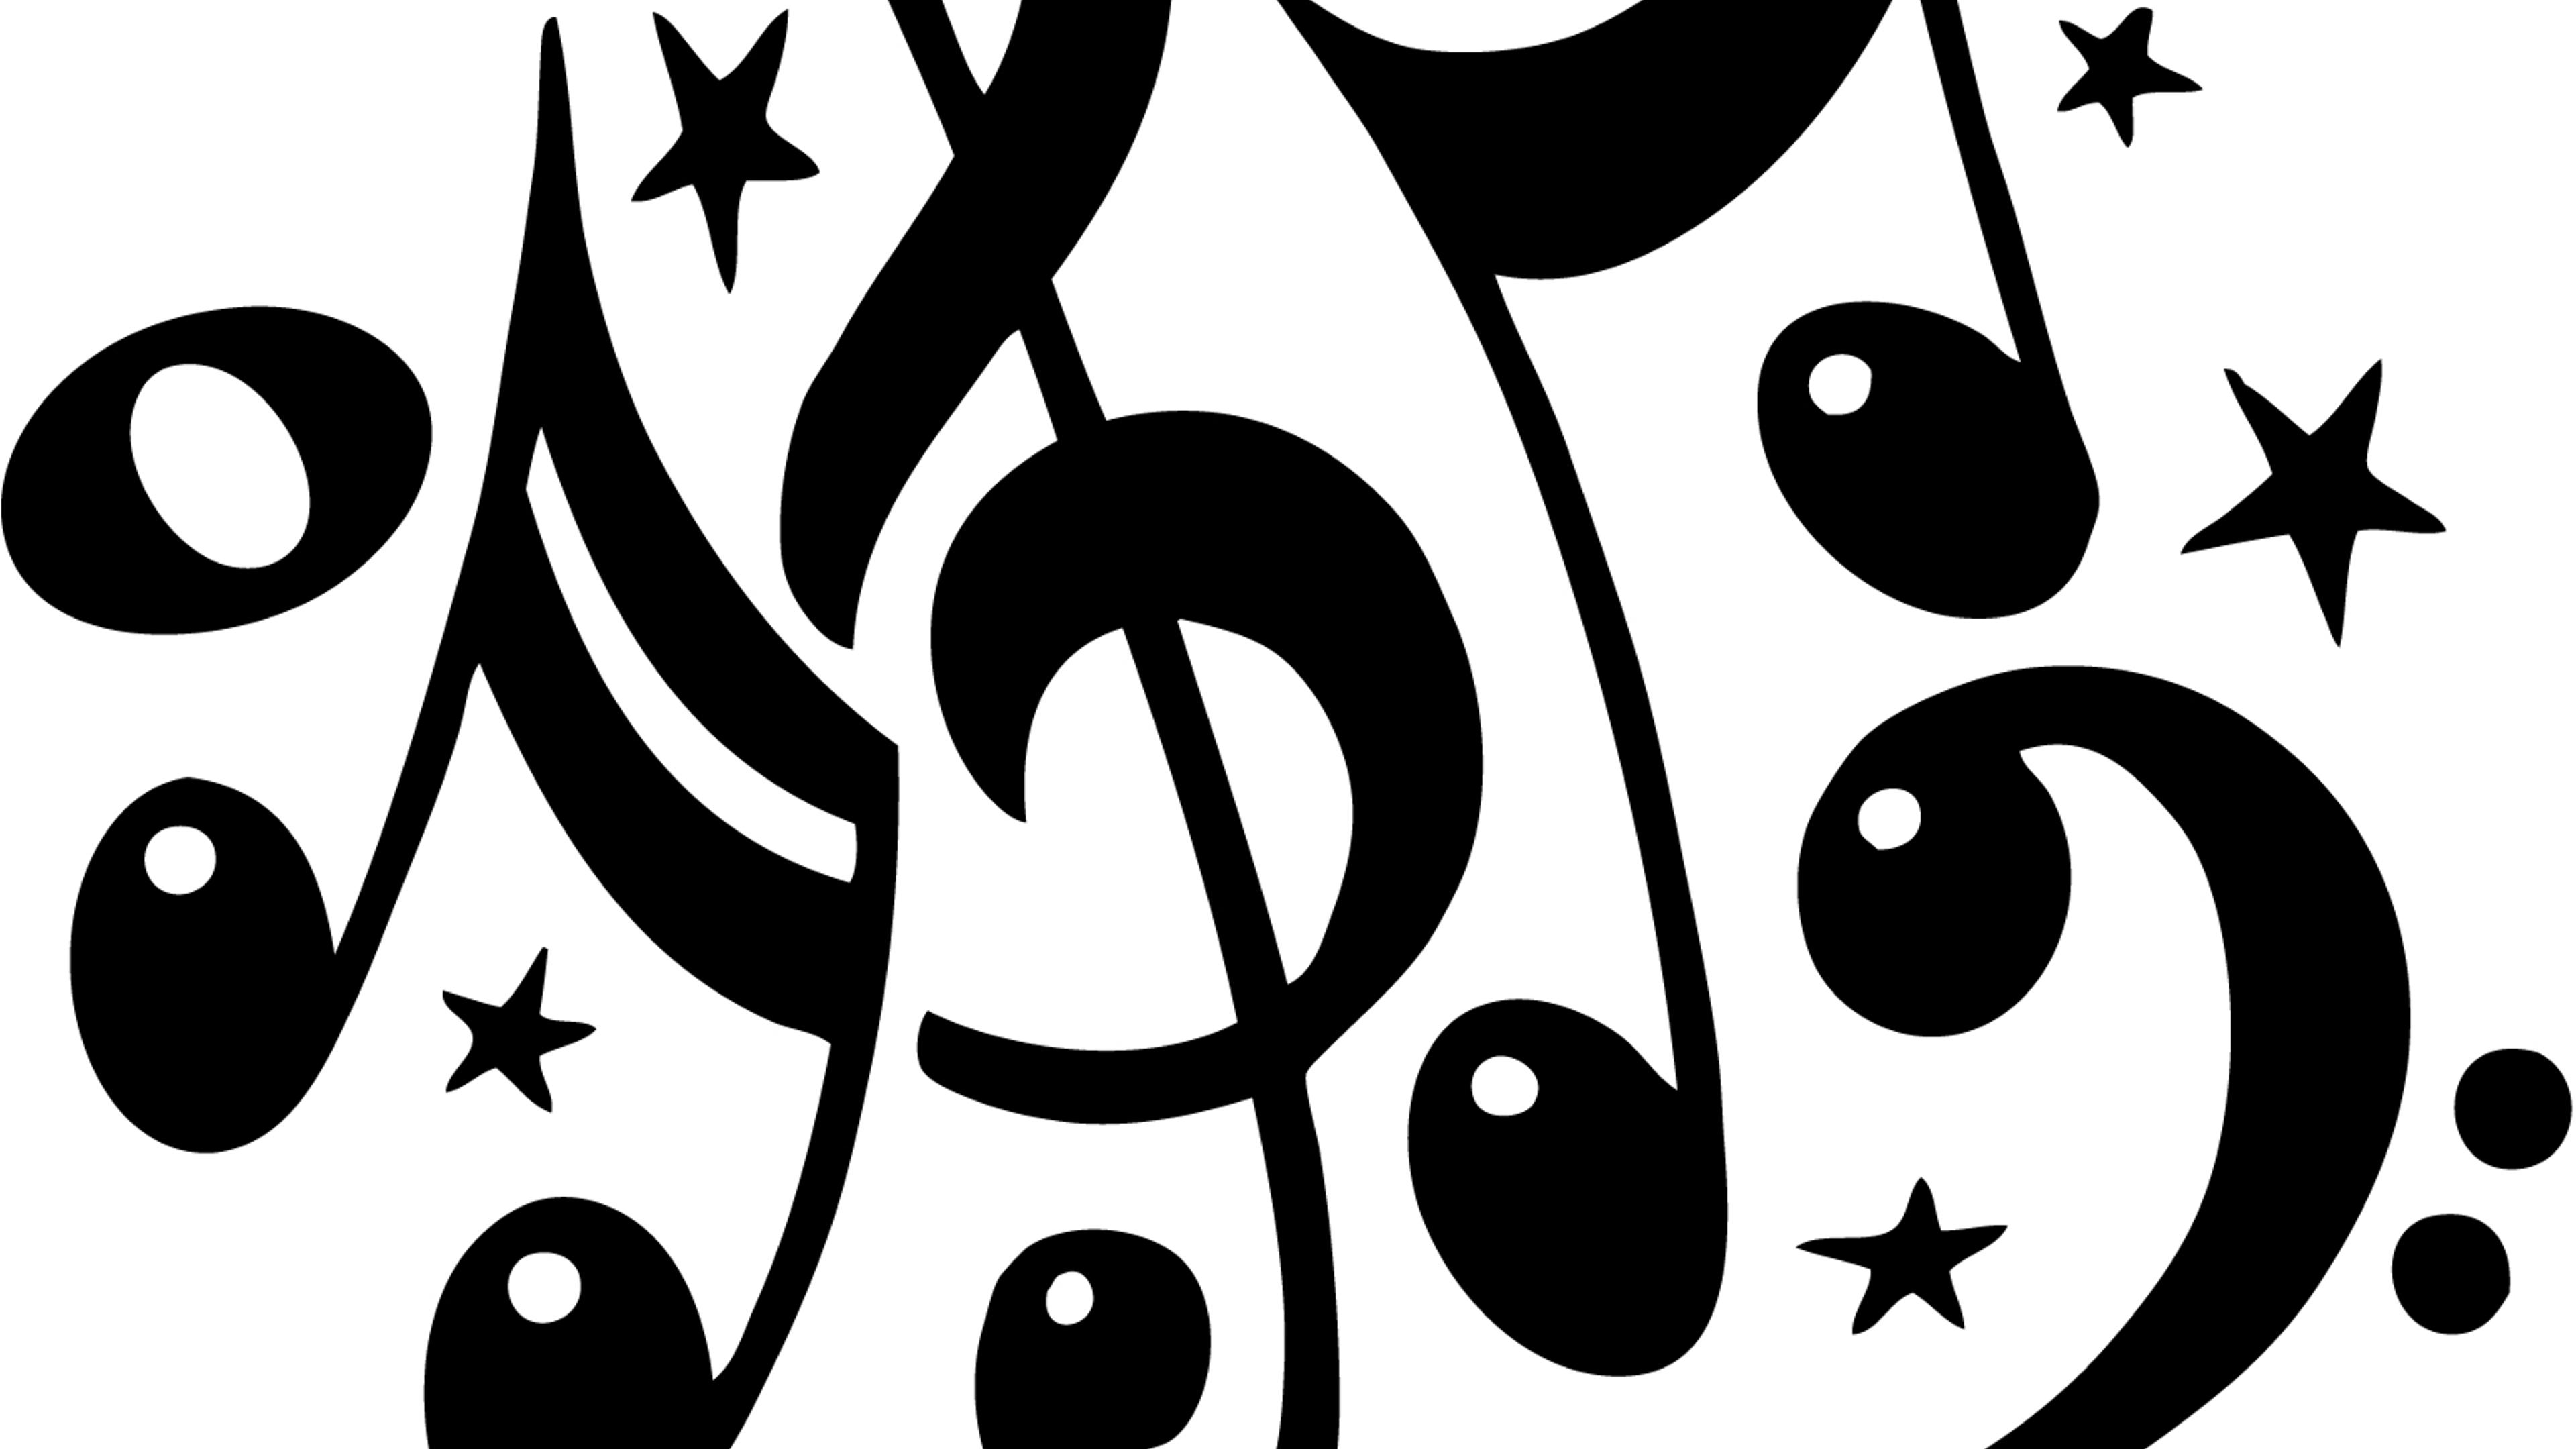 Black Musical Notes And Sol Key On White Background Wallpaper Download 3840x2160